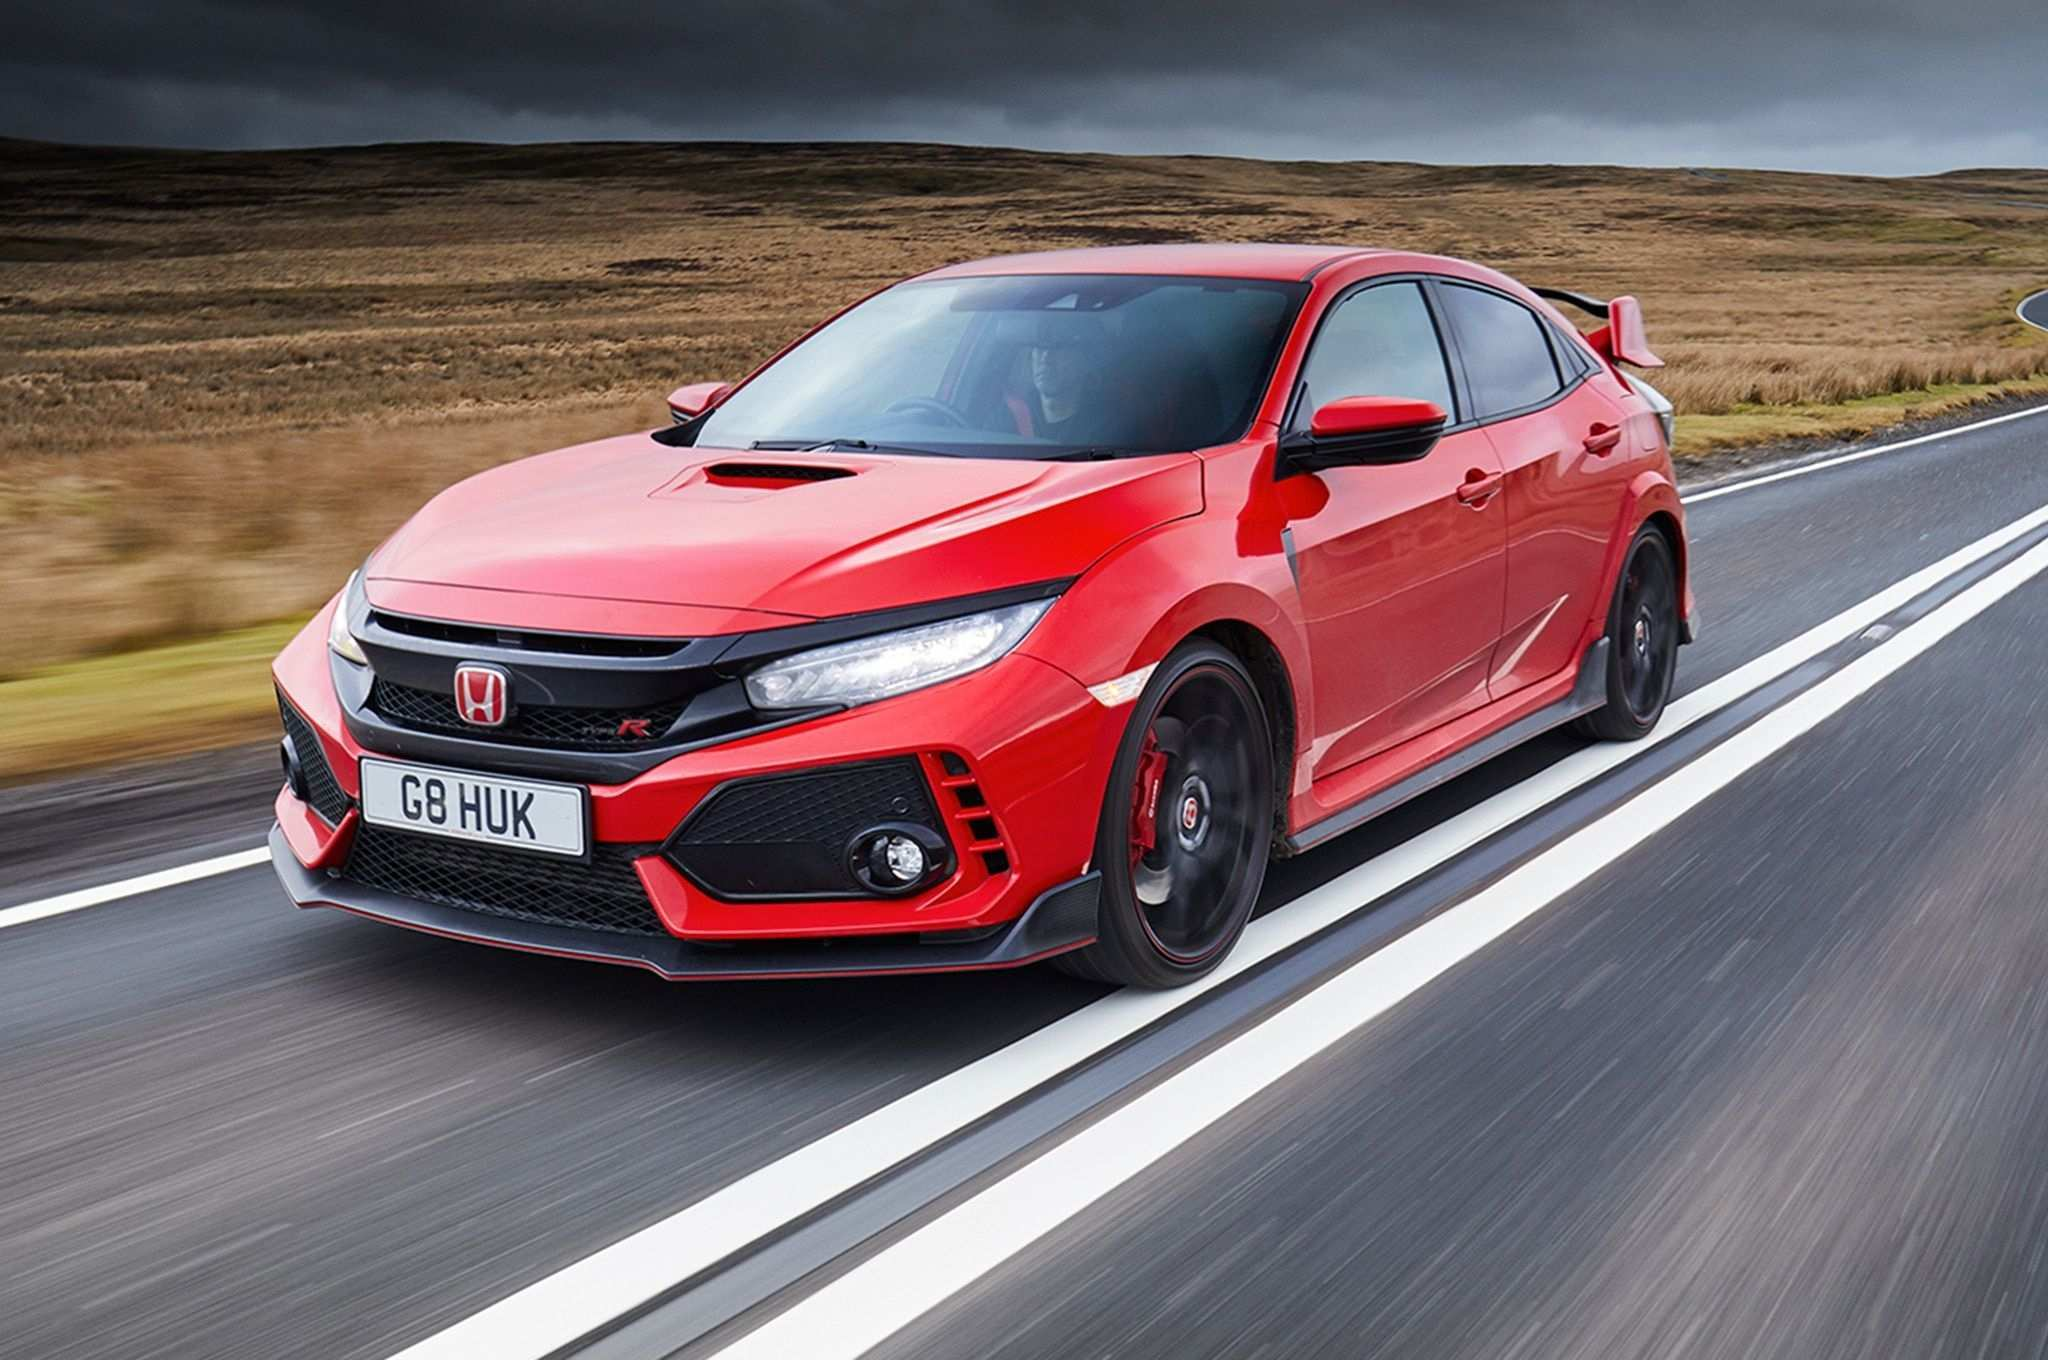 61 All New 2020 Honda Civic Si Type R Picture